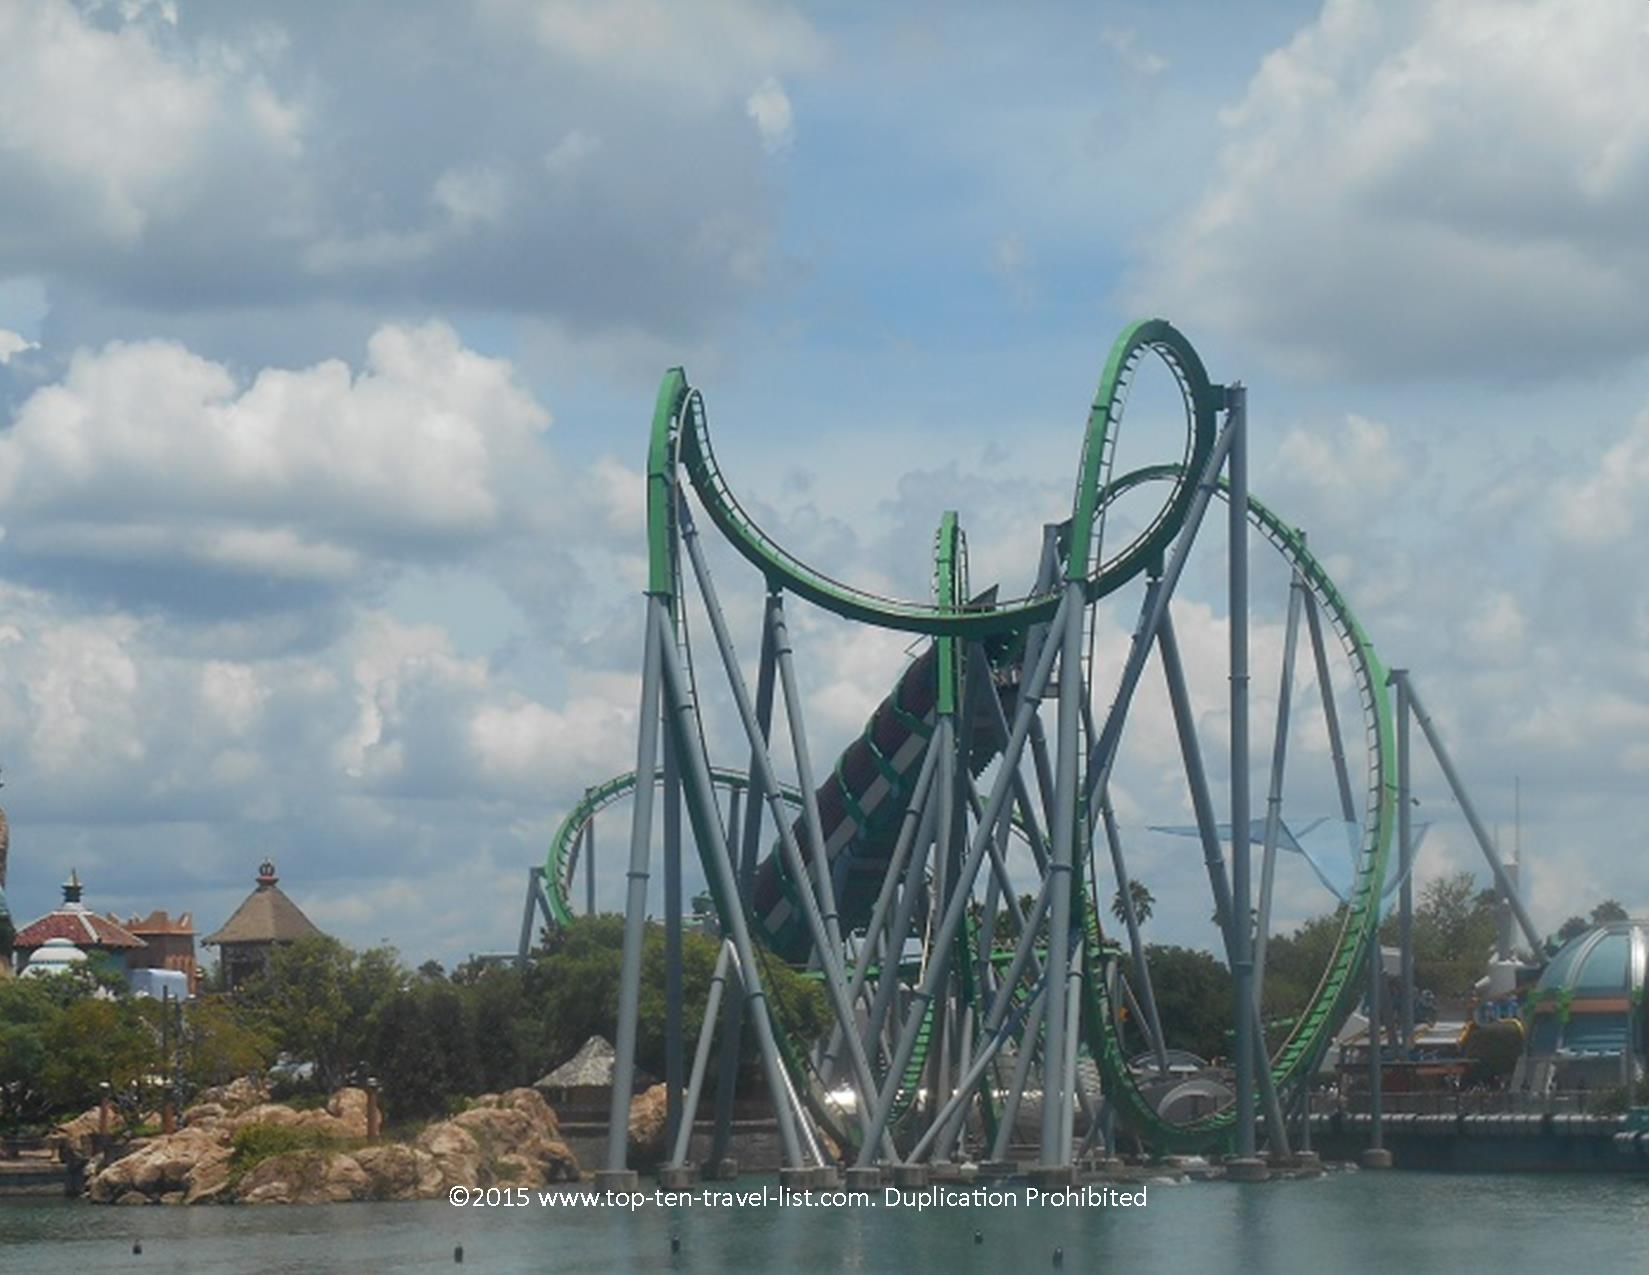 The Hulk Coaster at Islands of Adventure in Orlando, Florida